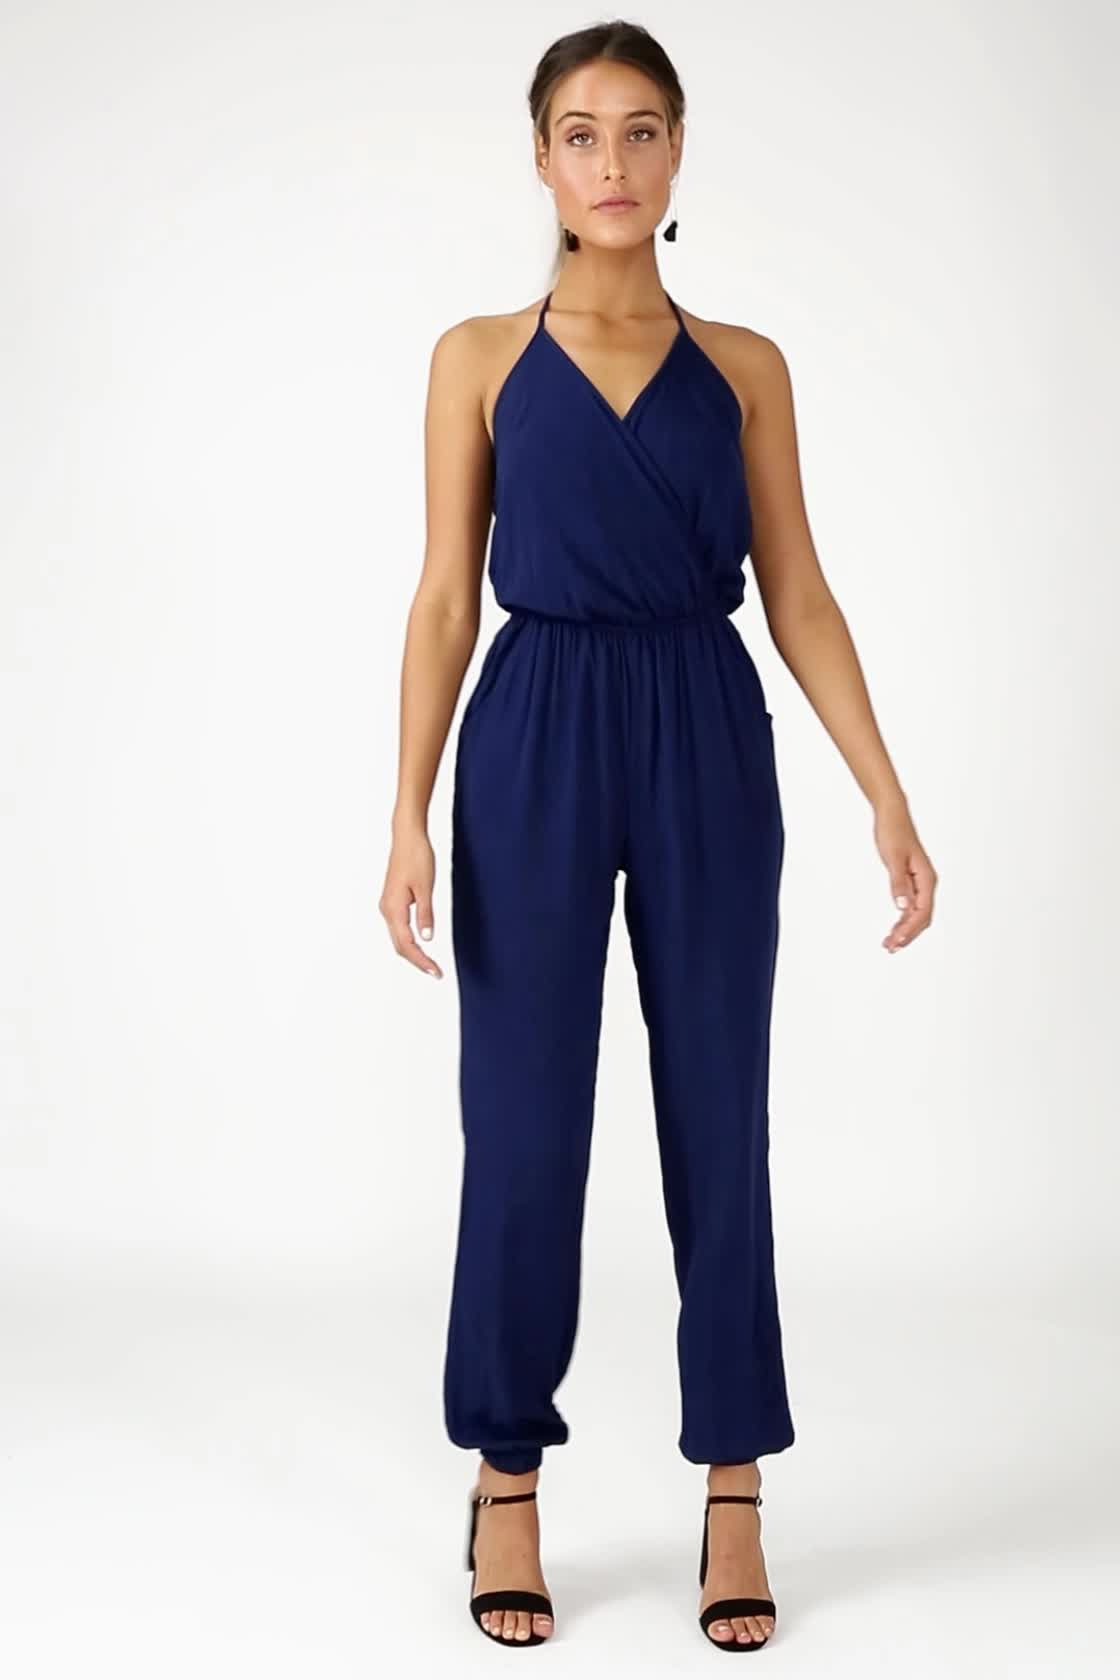 ca020a1e95cd Cute Navy Blue Jumpsuit - Sleeveless Jumpsuit